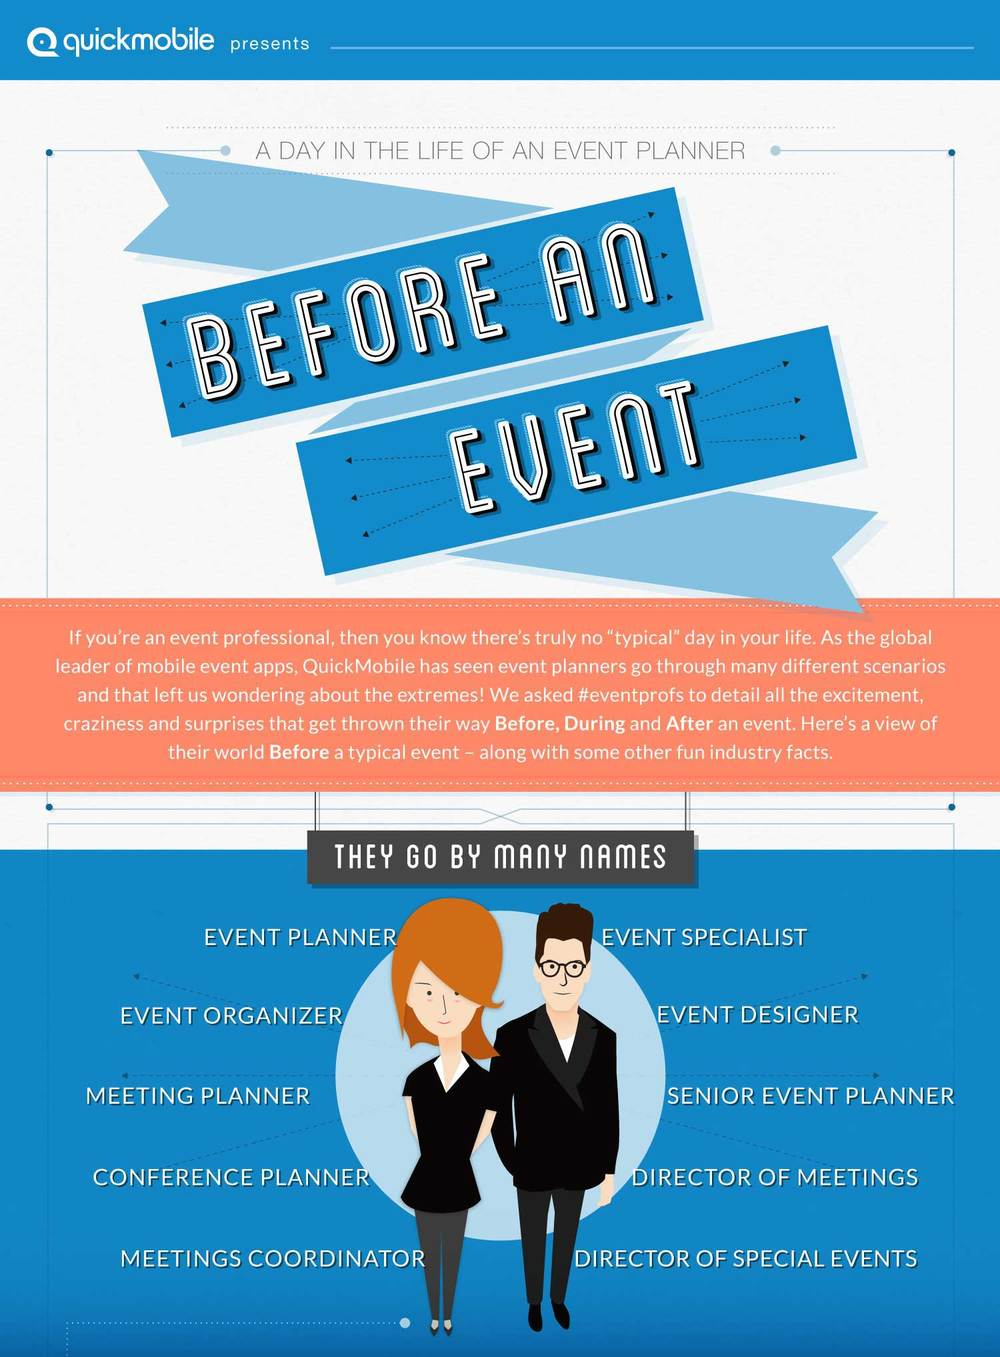 A Day in the Life of an Event Planner (pt 1)